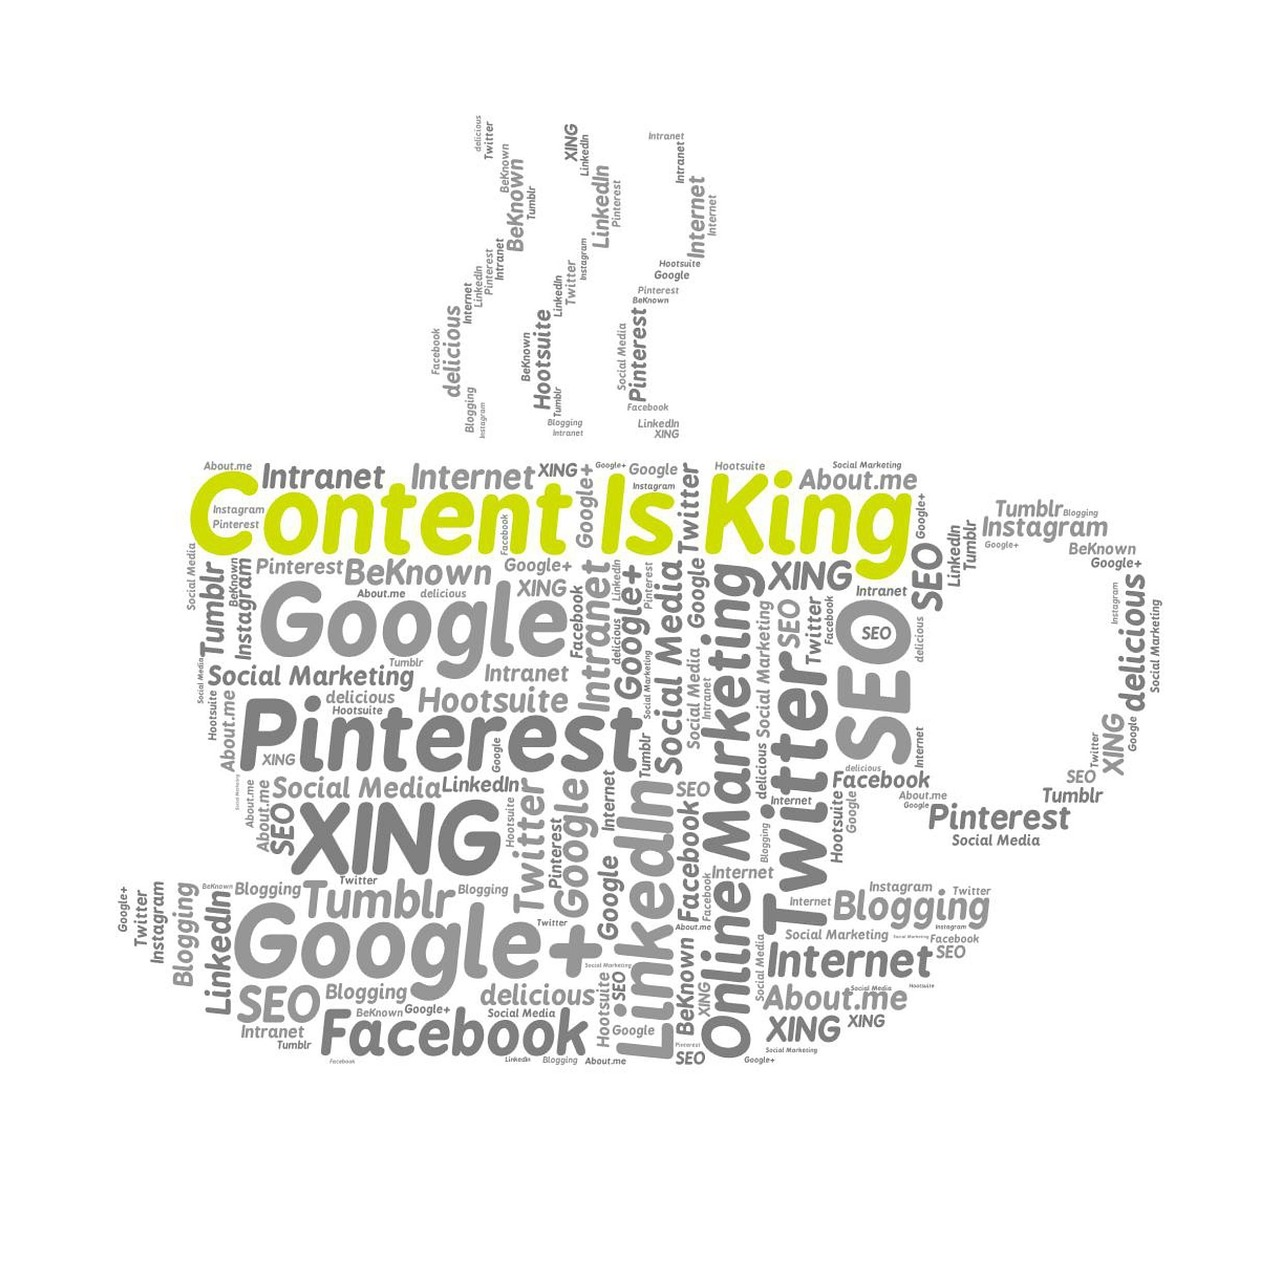 Pushing Old Content to Improve Search Rankings